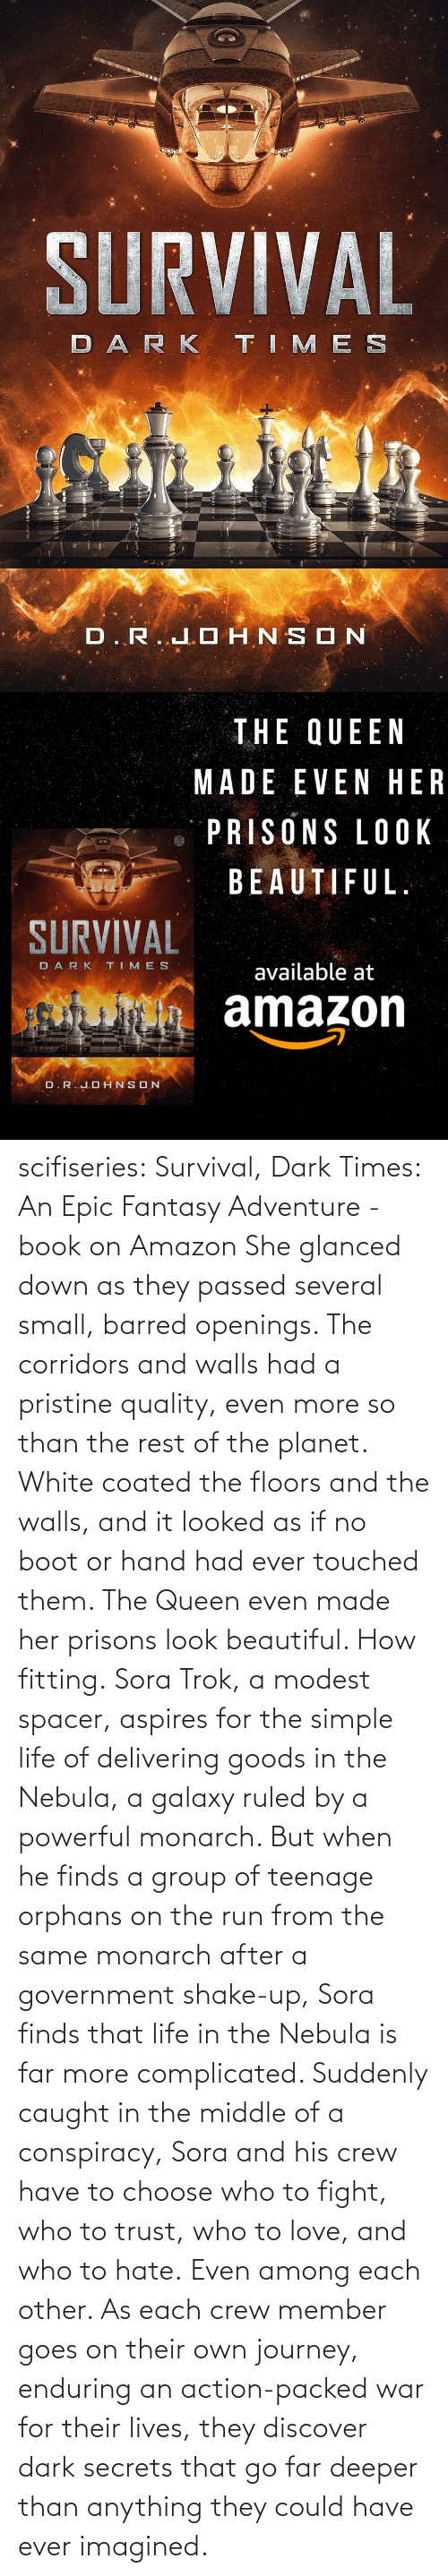 ever: scifiseries: Survival, Dark Times: An Epic Fantasy Adventure - book on Amazon  She glanced down as they  passed several small, barred openings. The corridors and walls had a  pristine quality, even more so than the rest of the planet. White coated  the floors and the walls, and it looked as if no boot or hand had ever  touched them.  The Queen even made her prisons look beautiful.  How fitting. Sora  Trok, a modest spacer, aspires for the simple life of delivering goods  in the Nebula, a galaxy ruled by a powerful monarch. But when he finds a  group of teenage orphans on the run from the same monarch after a  government shake-up, Sora finds that life in the Nebula is far more complicated.  Suddenly  caught in the middle of a conspiracy, Sora and his crew have to choose  who to fight, who to trust, who to love, and who to hate. Even among each other.  As  each crew member goes on their own journey, enduring an action-packed  war for their lives, they discover dark secrets that go far deeper than  anything they could have ever imagined.